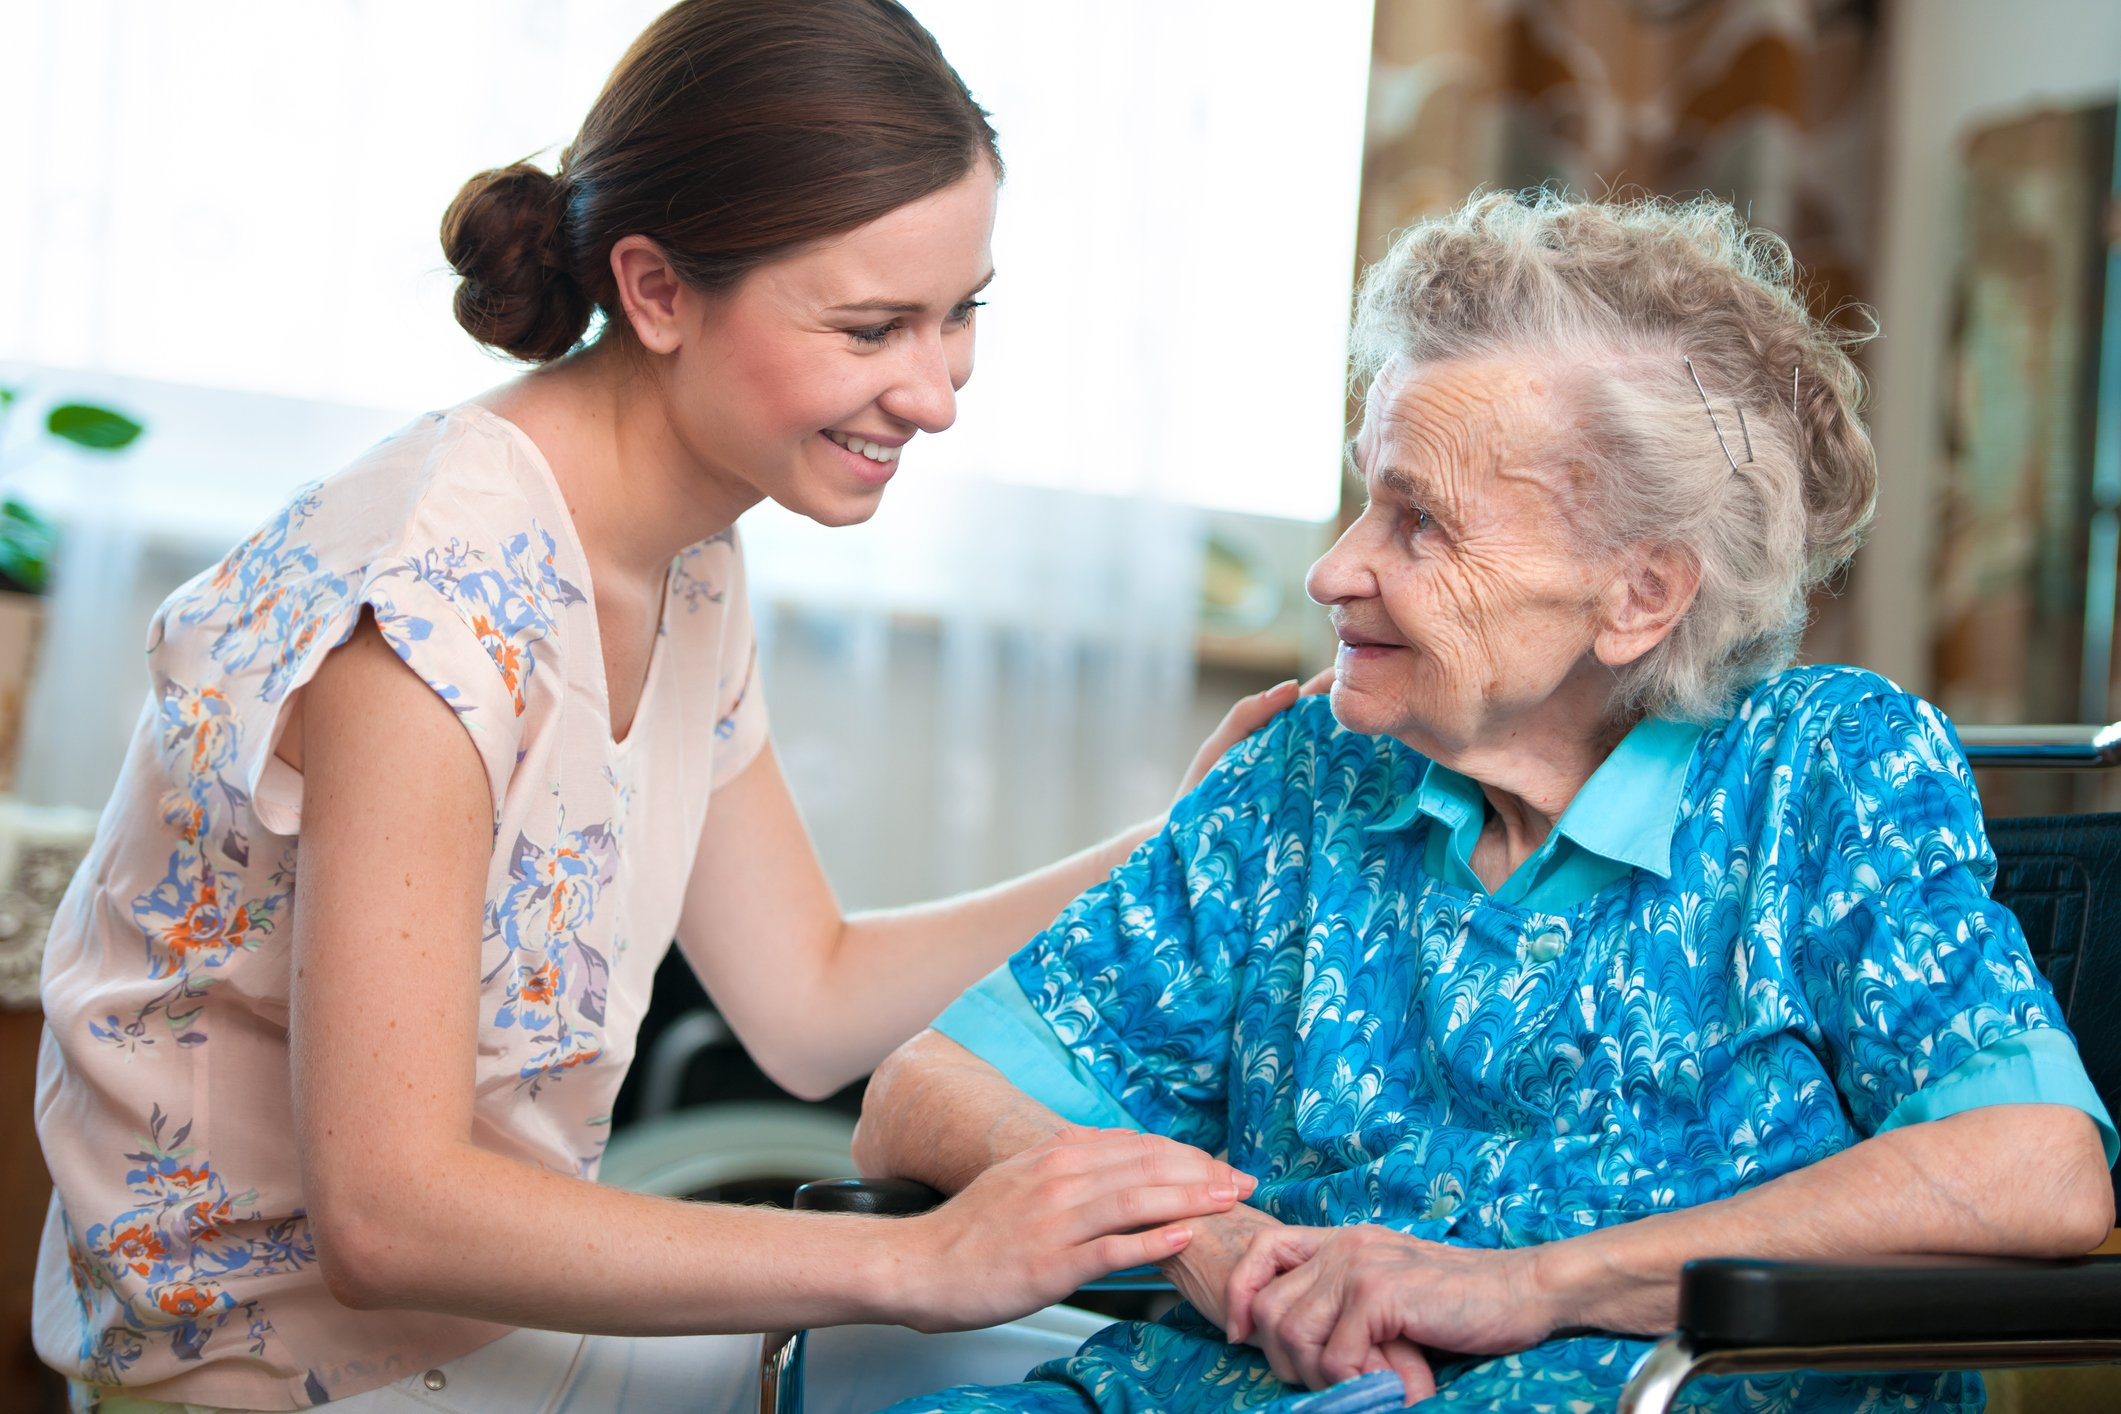 Why Home Health & Home Care Is Commonly Delivered in Assisted Living